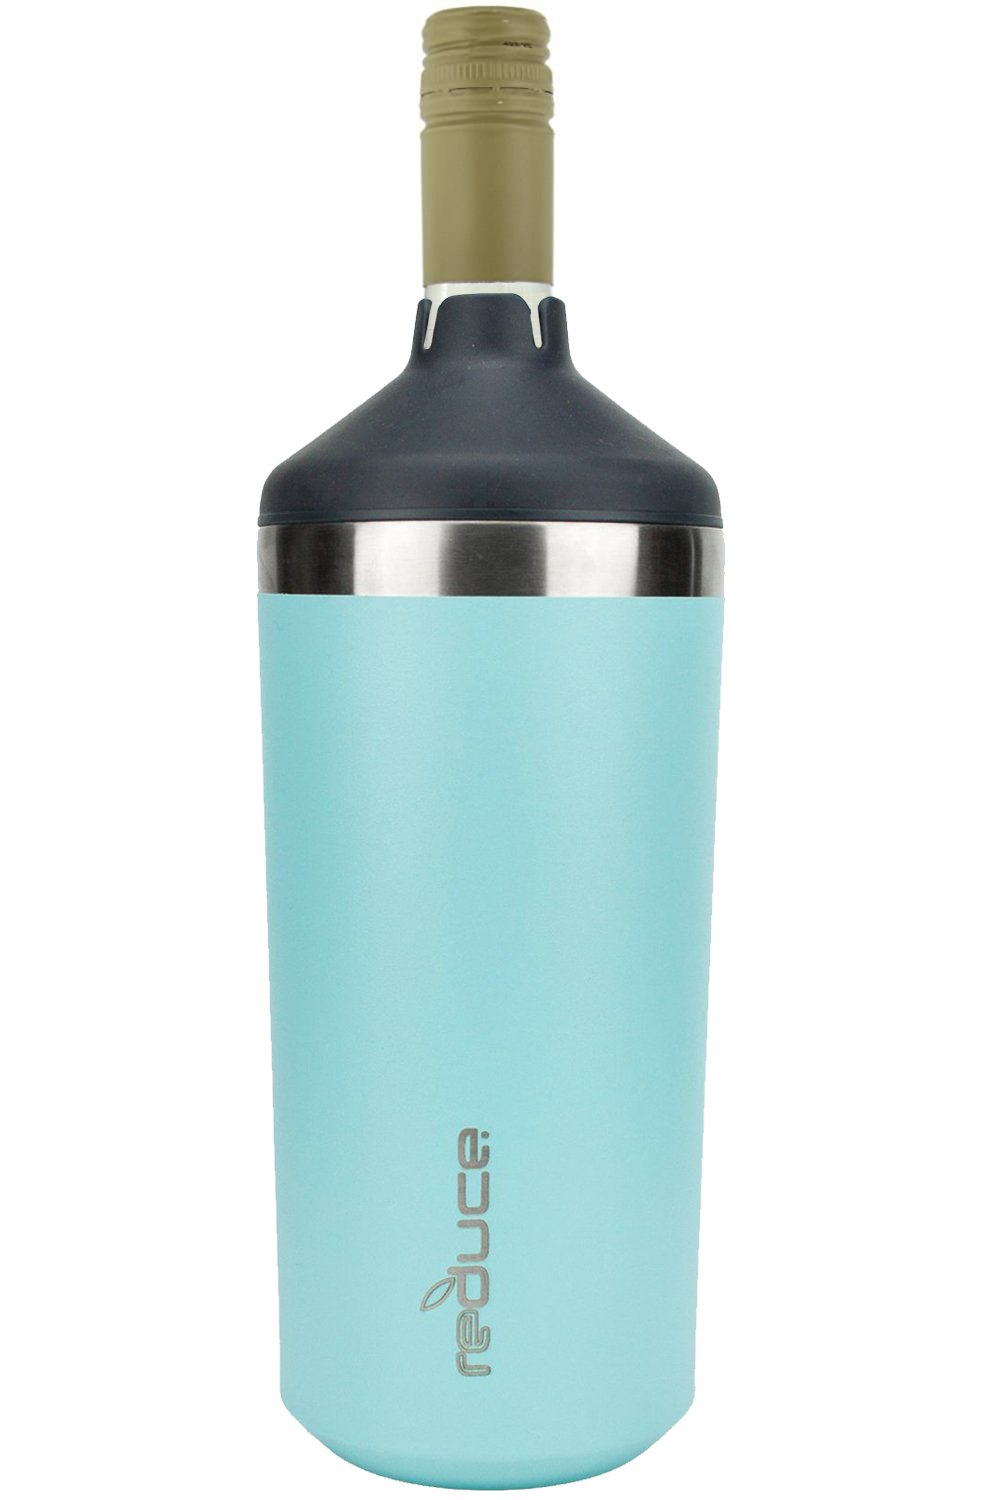 Portable Wine Bottle Cooler by REDUCE - Stainless Steel, Insulated Chiller to Keep Wine at the Perfect Temperature, No Ice Required - Ideal for Outdoor Summer Parties, Fits Most Wine Bottles - Mint by REDUCE (Image #1)